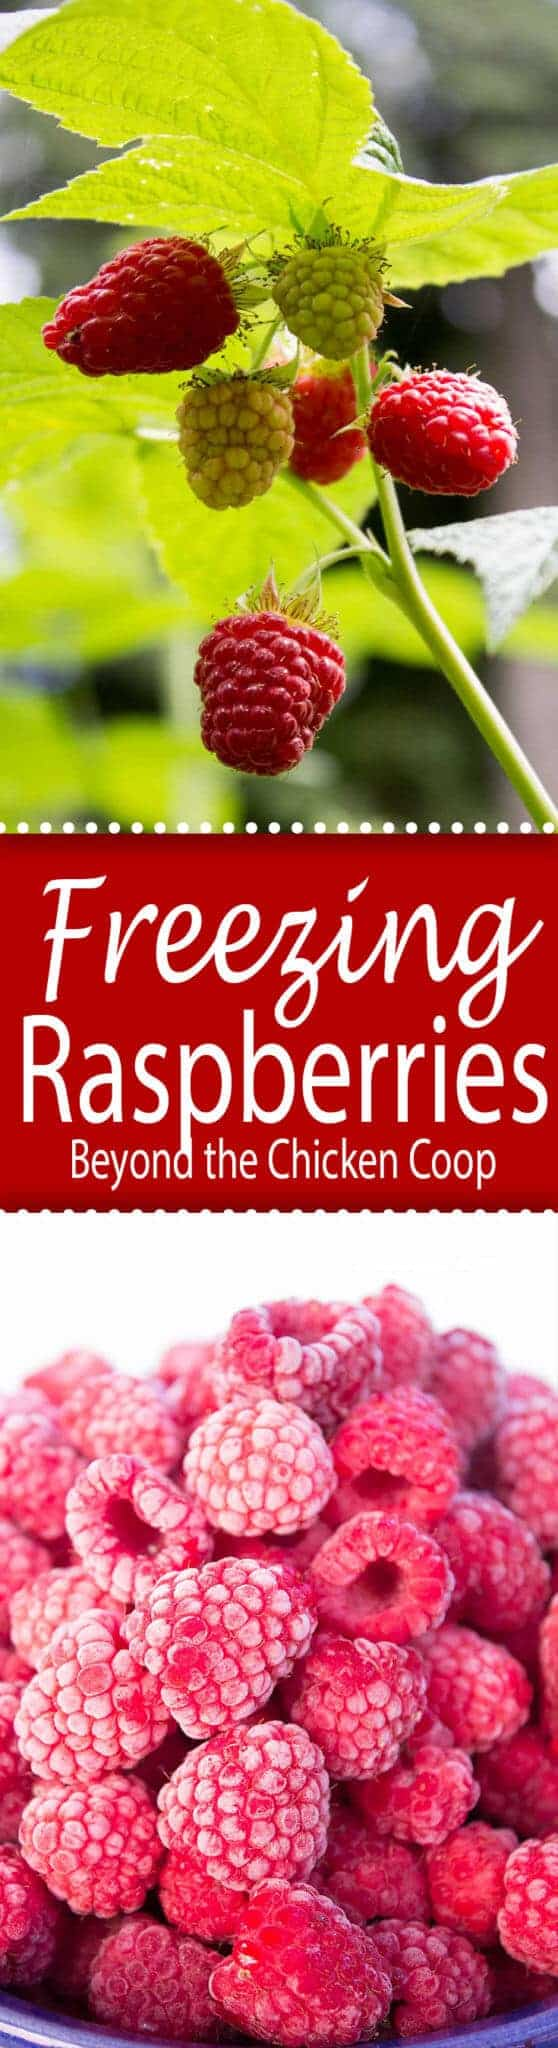 How to freeze fresh raspberries. If you grow your own raspberries you will want to freeze them to use all year long. #raspberries #howtofreezeraspberries